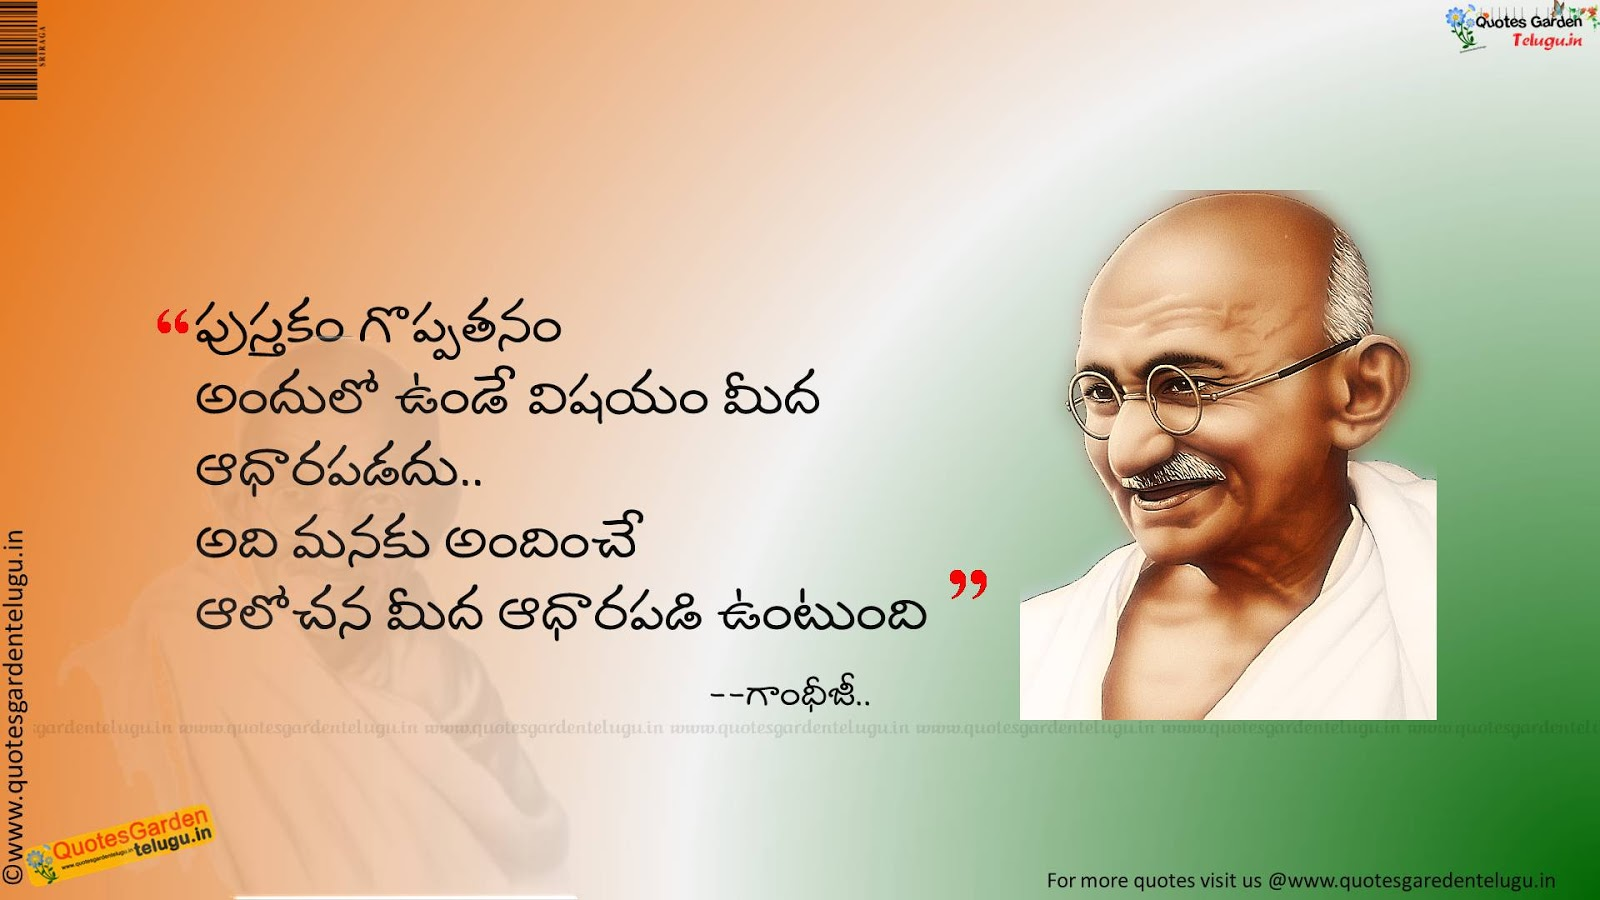 life and thoughts of mahatma gandhi The gandhi heritage portal is a complete repository of authentic information about mahatma gandhi with some rare photographs and writings the gandhi heritage portal is developed by the.